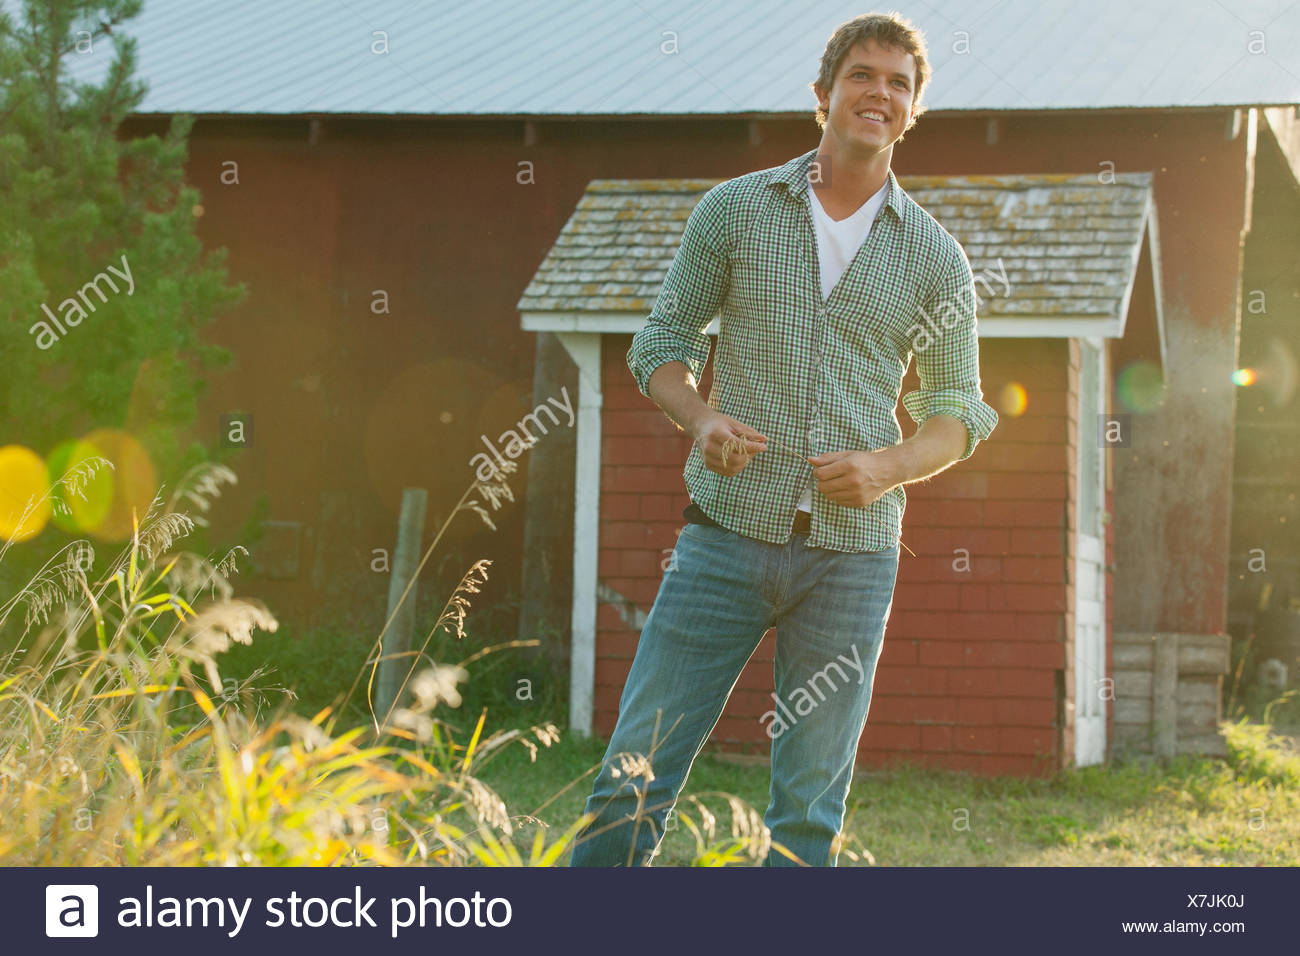 Mid adult man standing by barn on rural property. - Stock Image